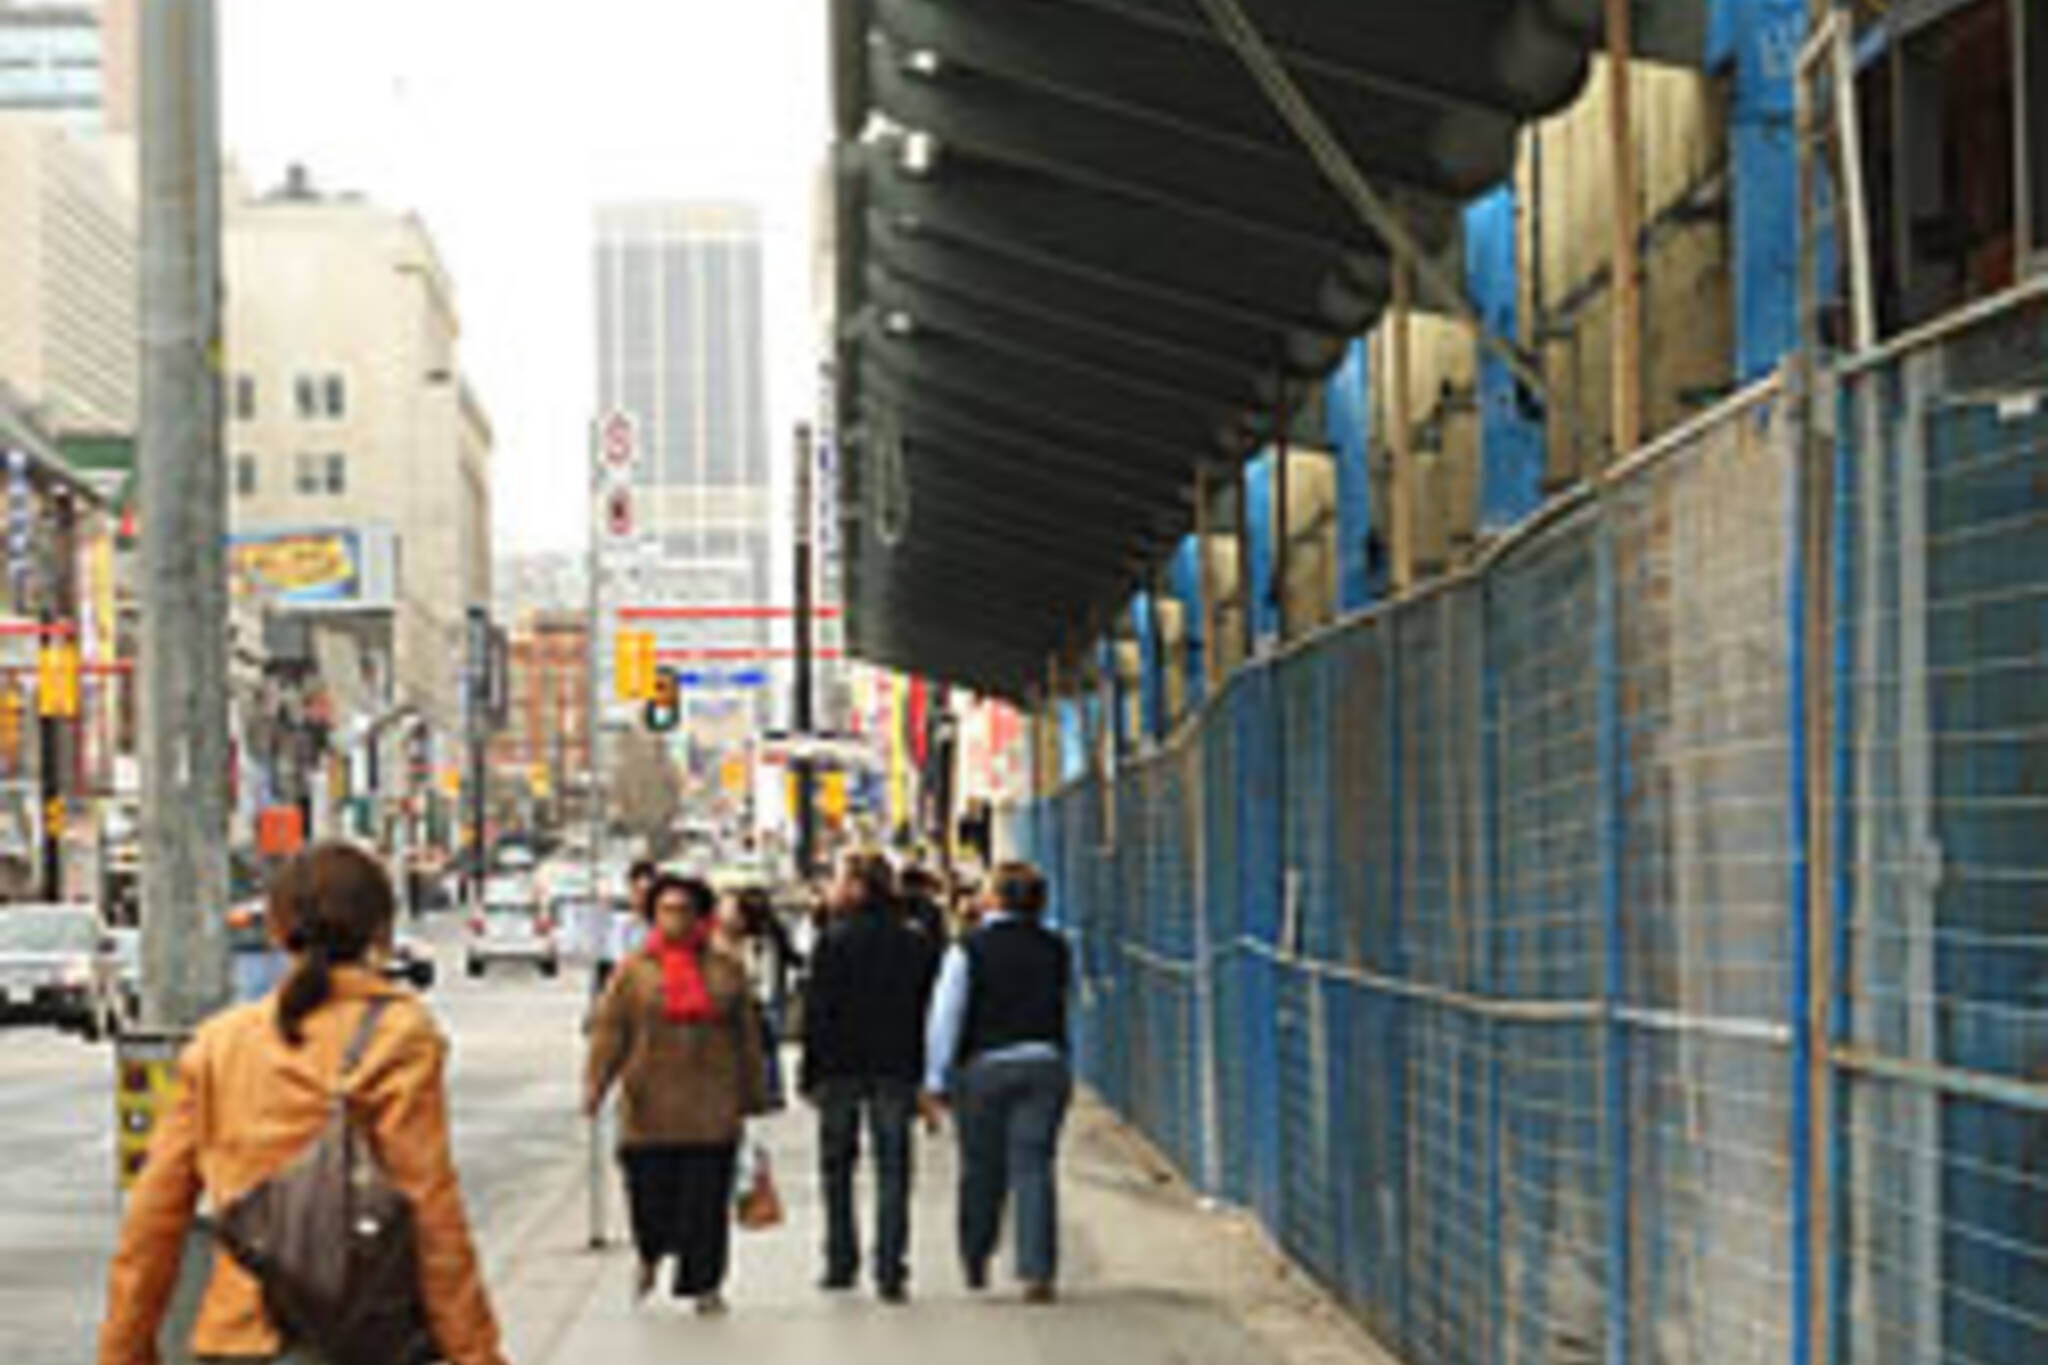 Sidewalk emerges at Yonge & Dundas